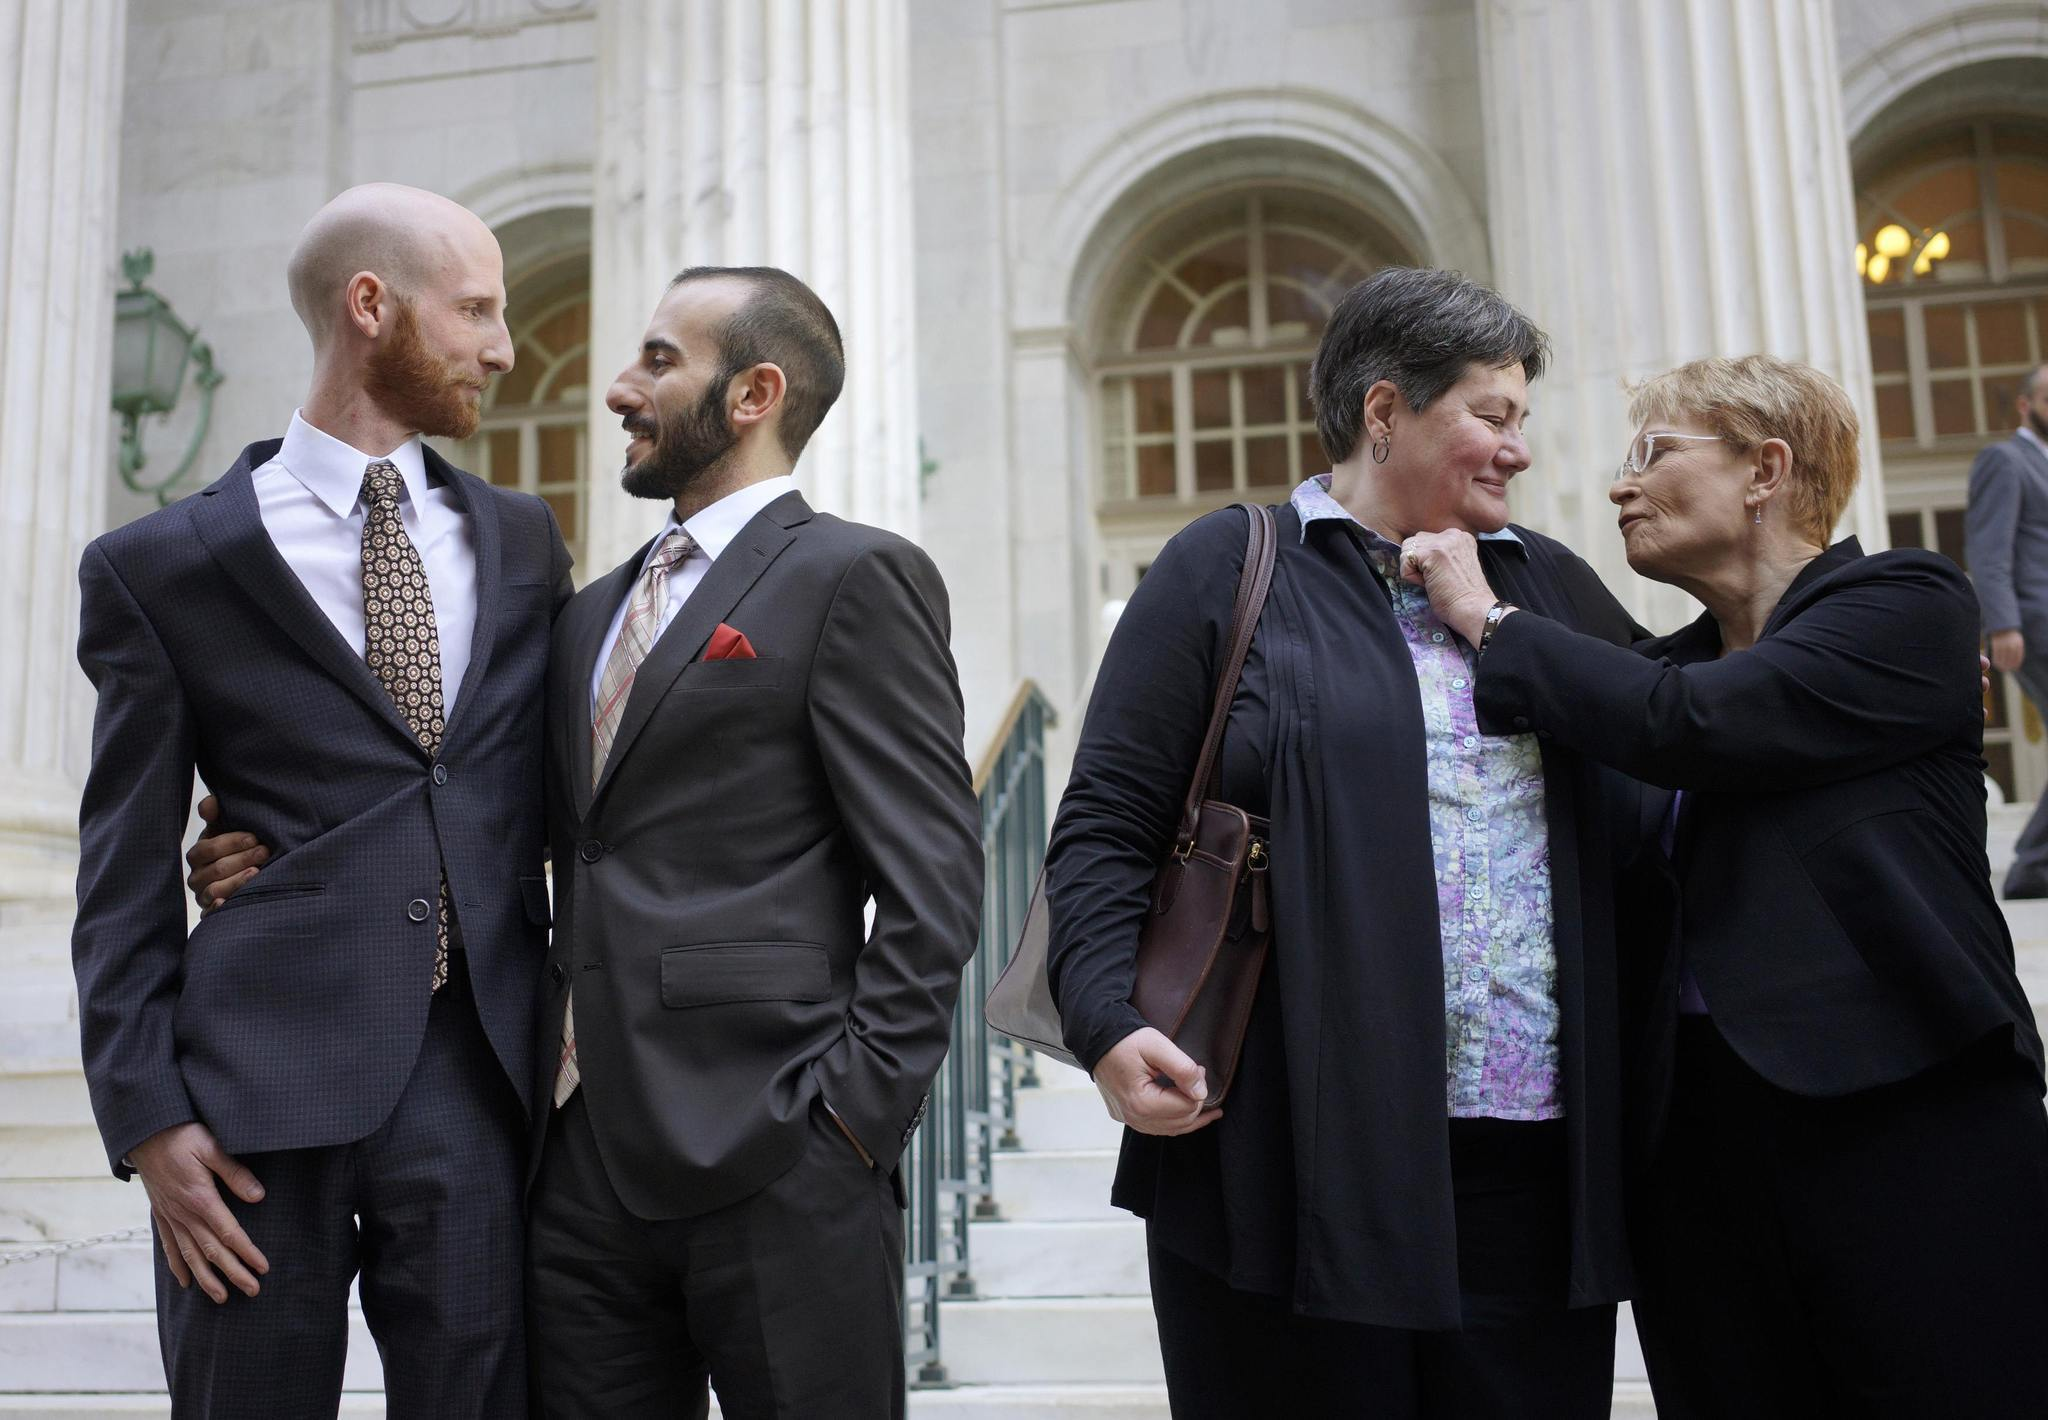 Plaintiffs Derek Kitchen (L-R) and Moudi Sbeity and Kate Call and Karen Archer talk outside the courthouse after a federal appeals court heard oral arguments on a Utah state law forbidding same sex marriage in Denver in an April 10, 2014.